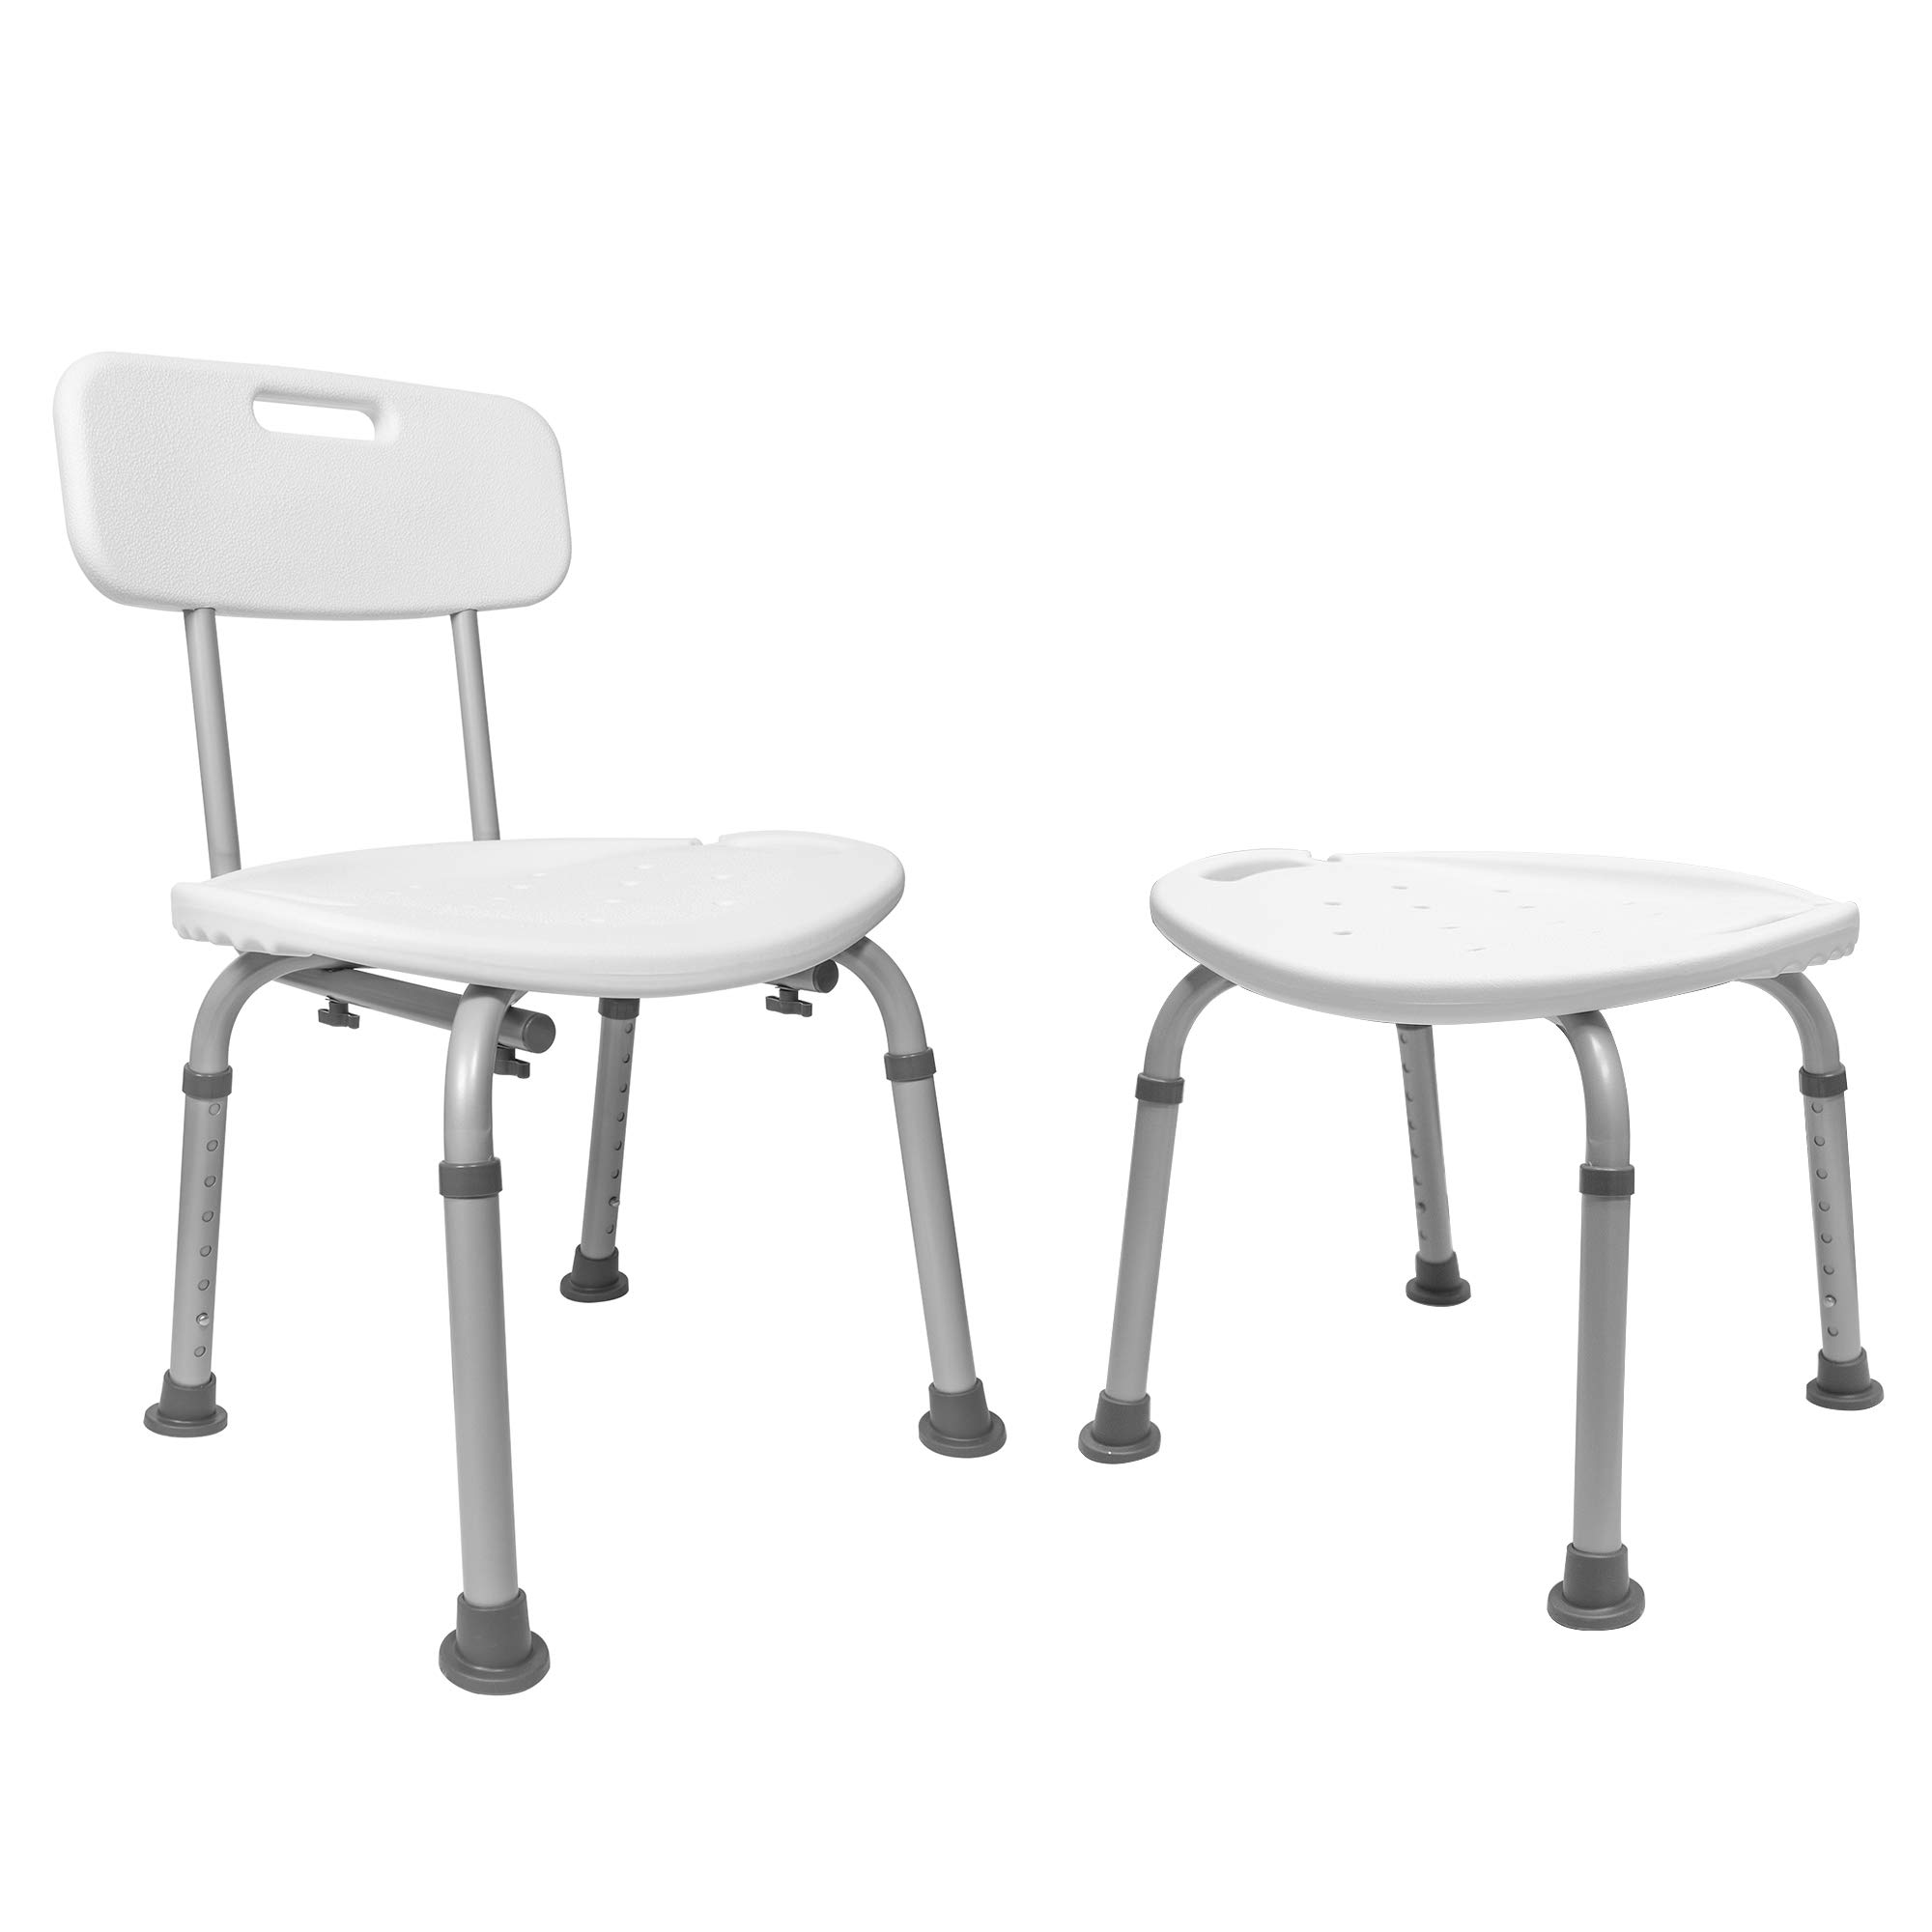 Medical Tool-Free Assembly Spa Bathtub Adjustable Carex Shower Chair Seat Bench with Removable Back by Vaunn (Image #3)